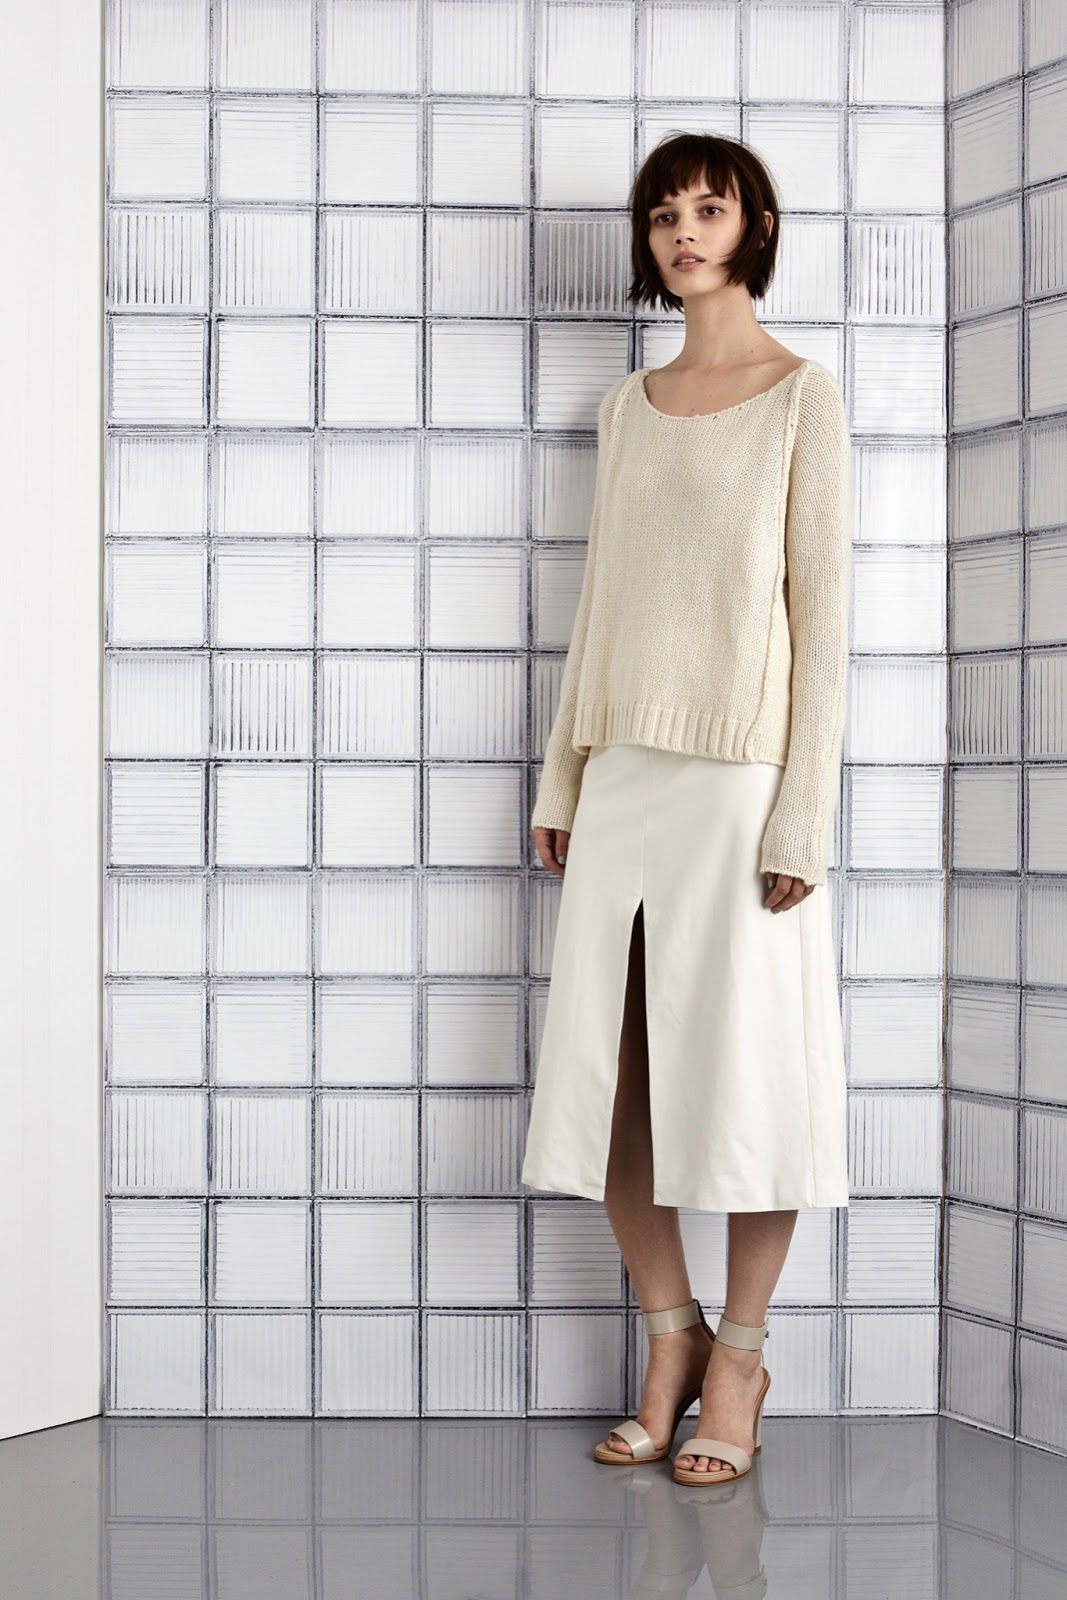 Tess Giberson Resort 2016 / best looks of resort 2016 inspired by organic and natural fabrics and living. Via fashioned by love / british fashion blog